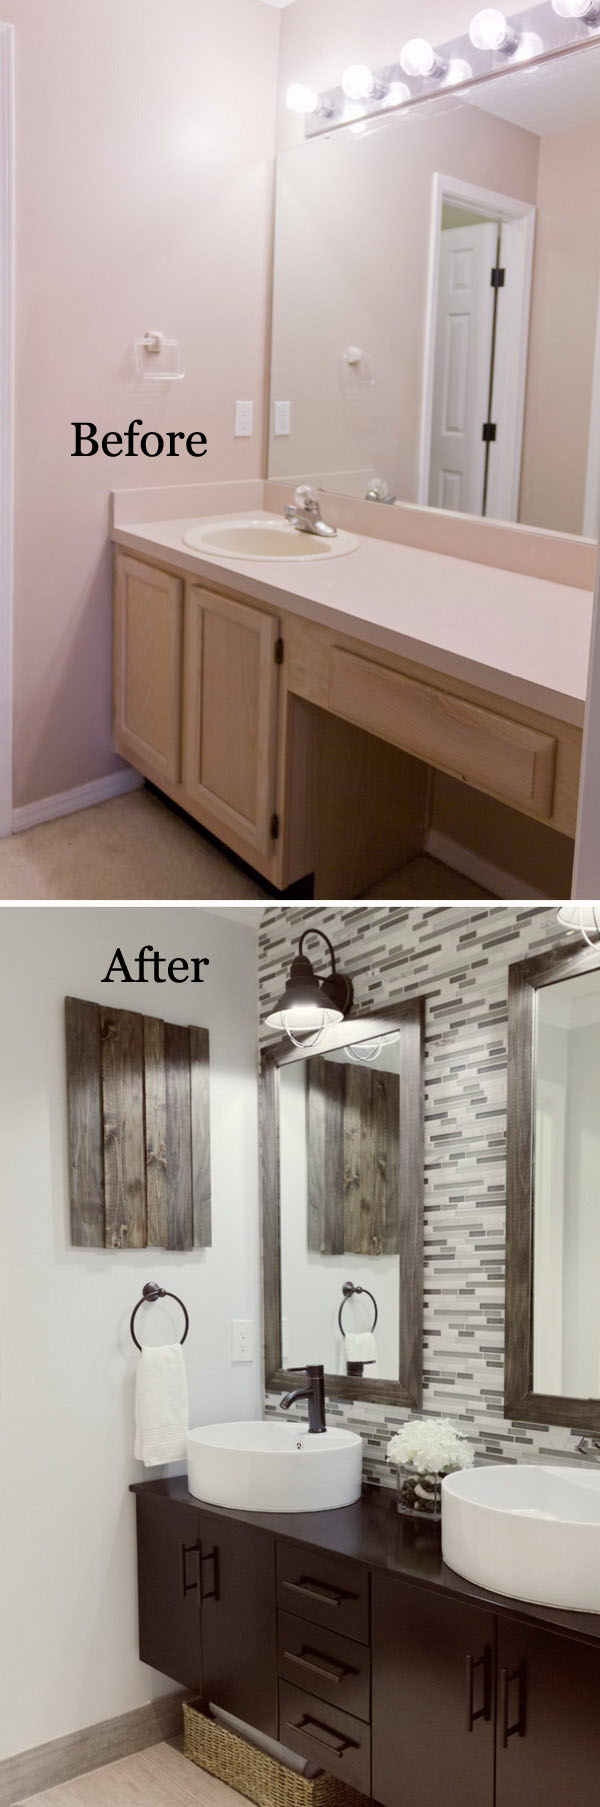 bathroom remodel before and after. Stunning Master Bathroom Remodel Before After And A